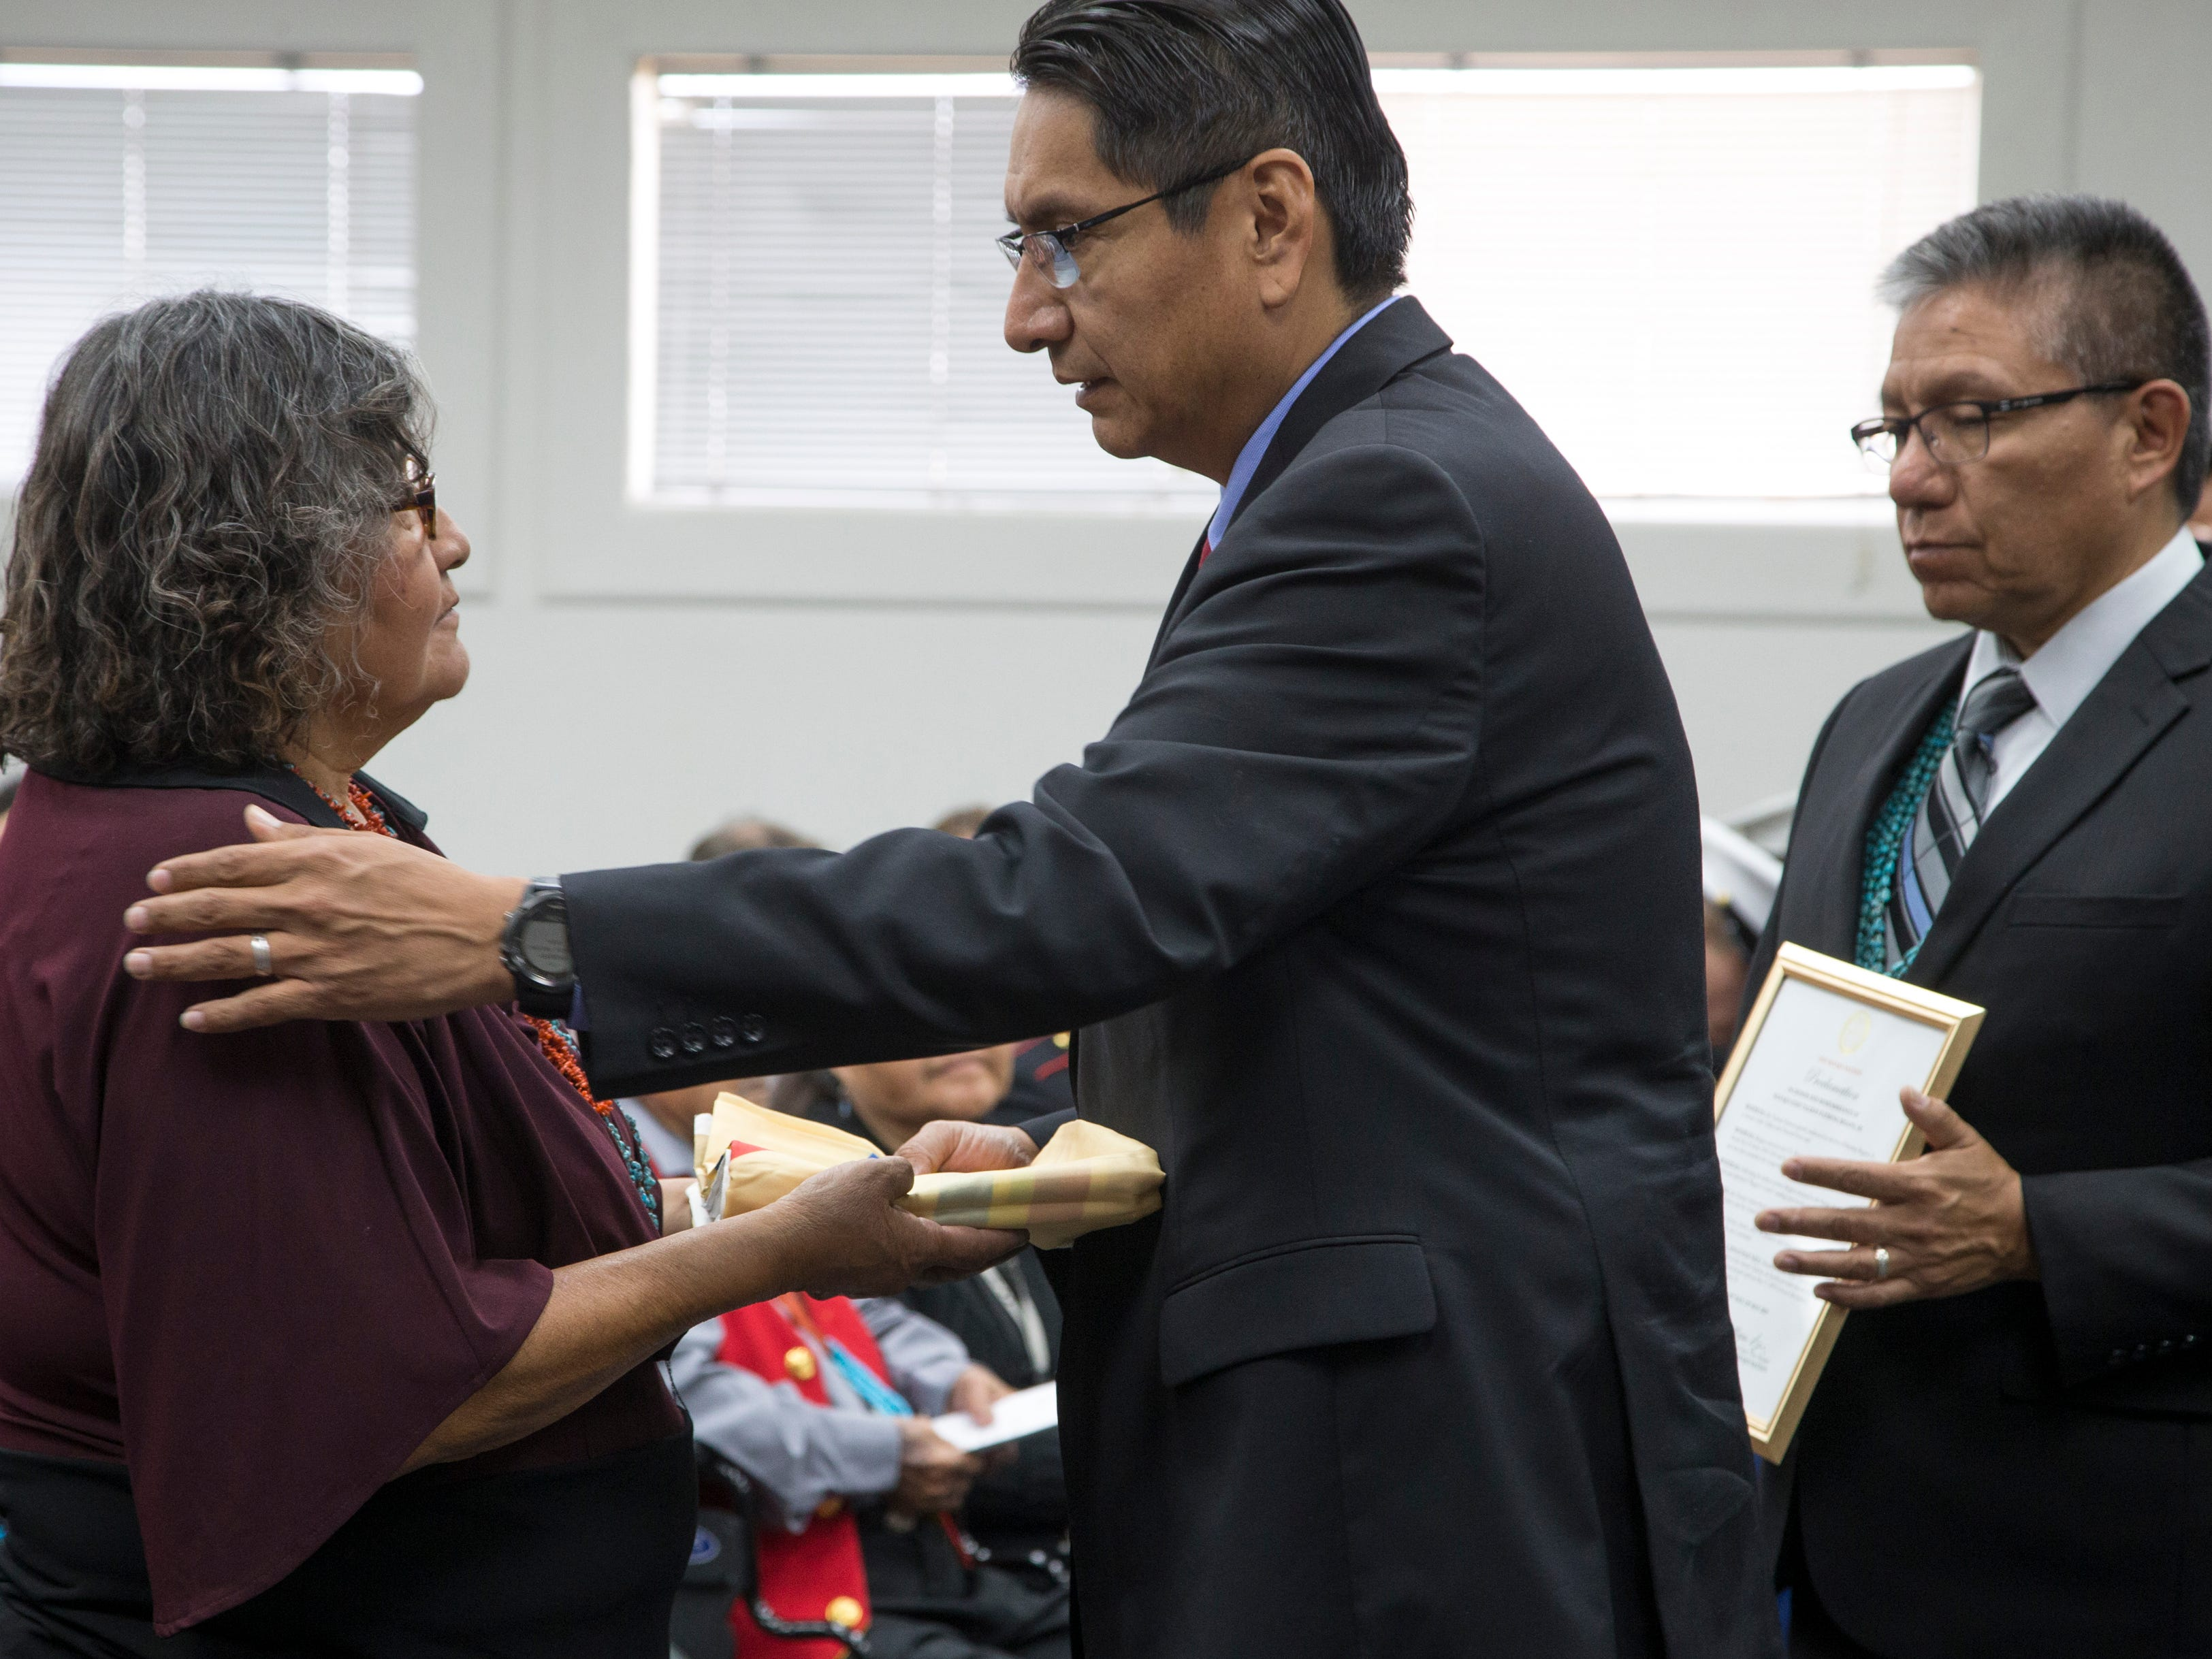 Navajo Nation President Jonathan Nez (center) presents Veronica Walter (left, daughter) a flag during the funeral service for Navajo Code Talker Fleming Begaye Sr. at the Potter's House Christian Center in Chinle, Ariz., on May 17, 2019.